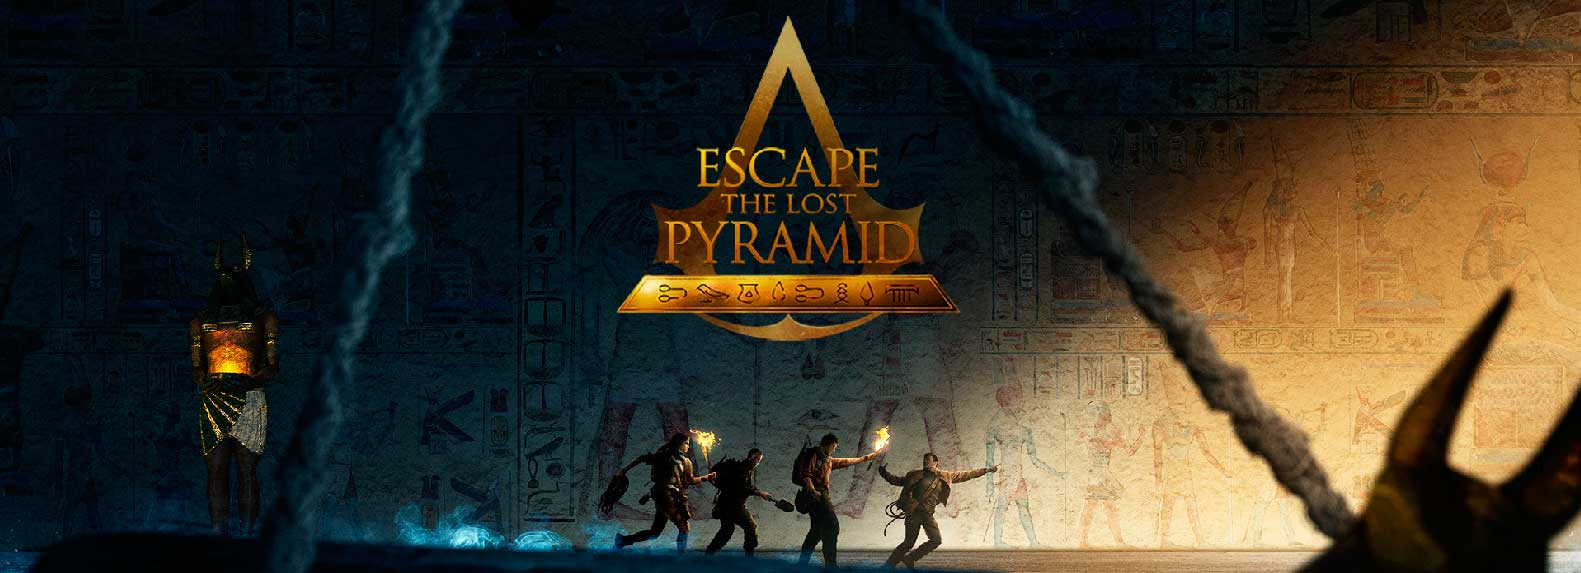 Escape room de Assassins Creed